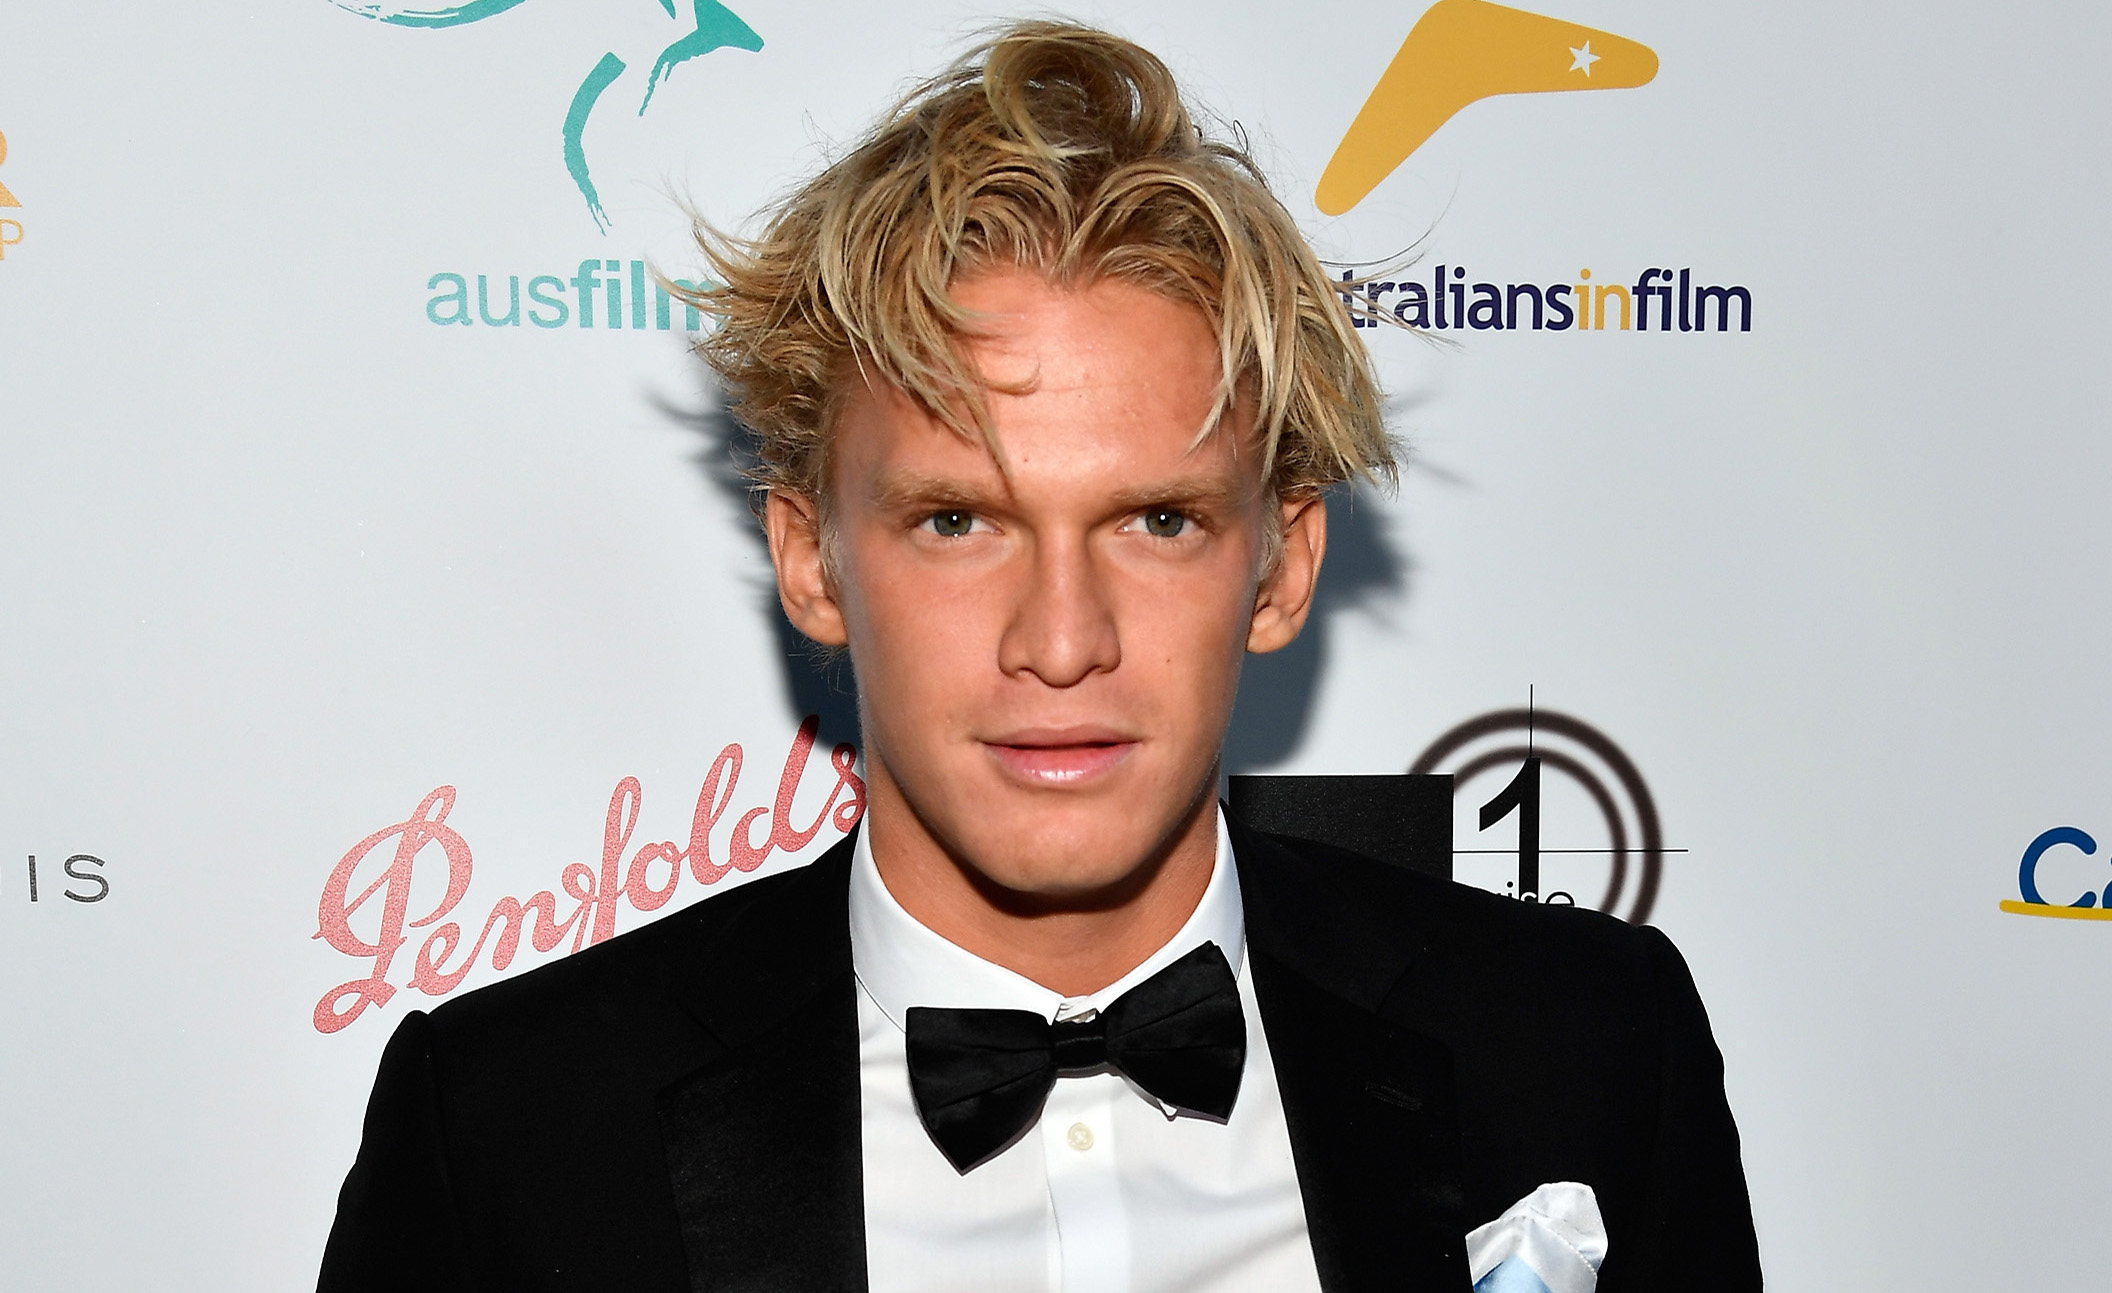 Who is cody simpson dating now